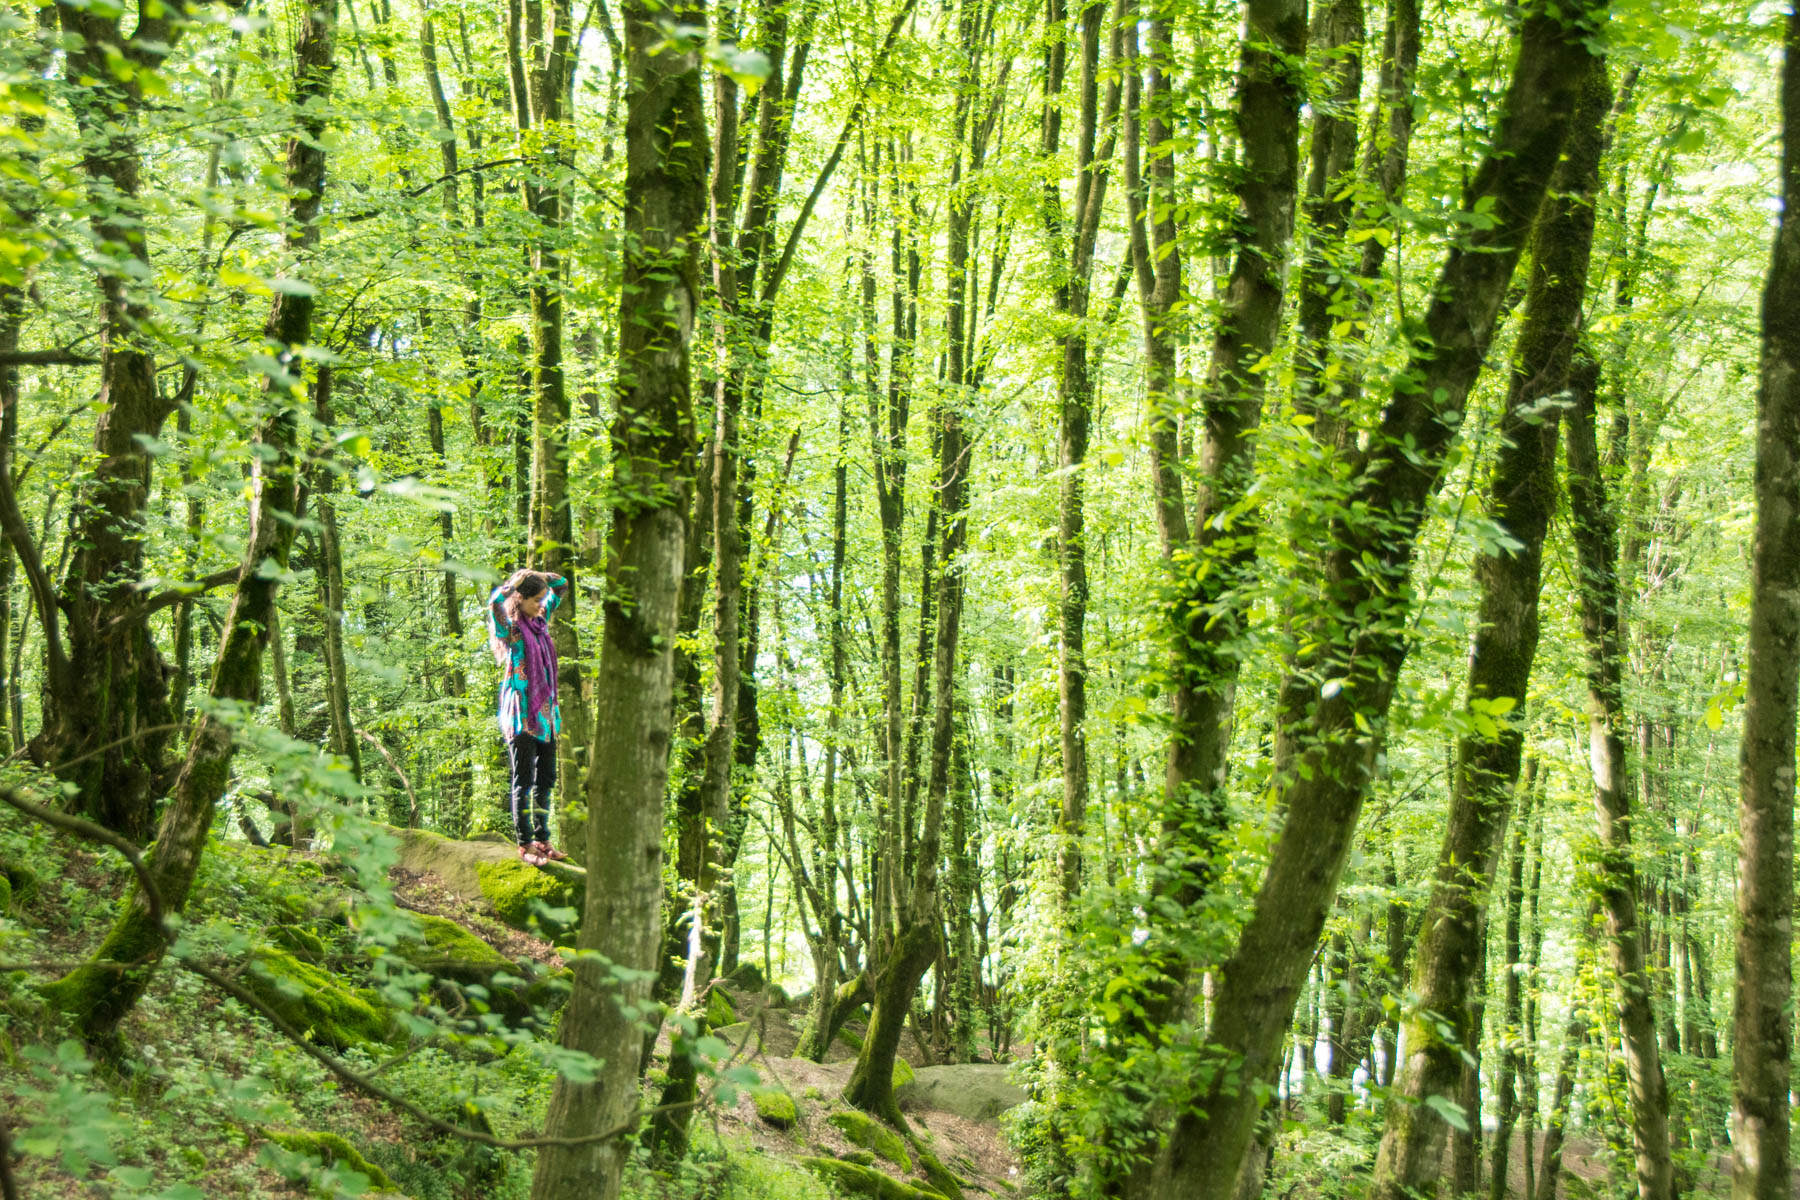 The forests of Gorgan in northern Iran